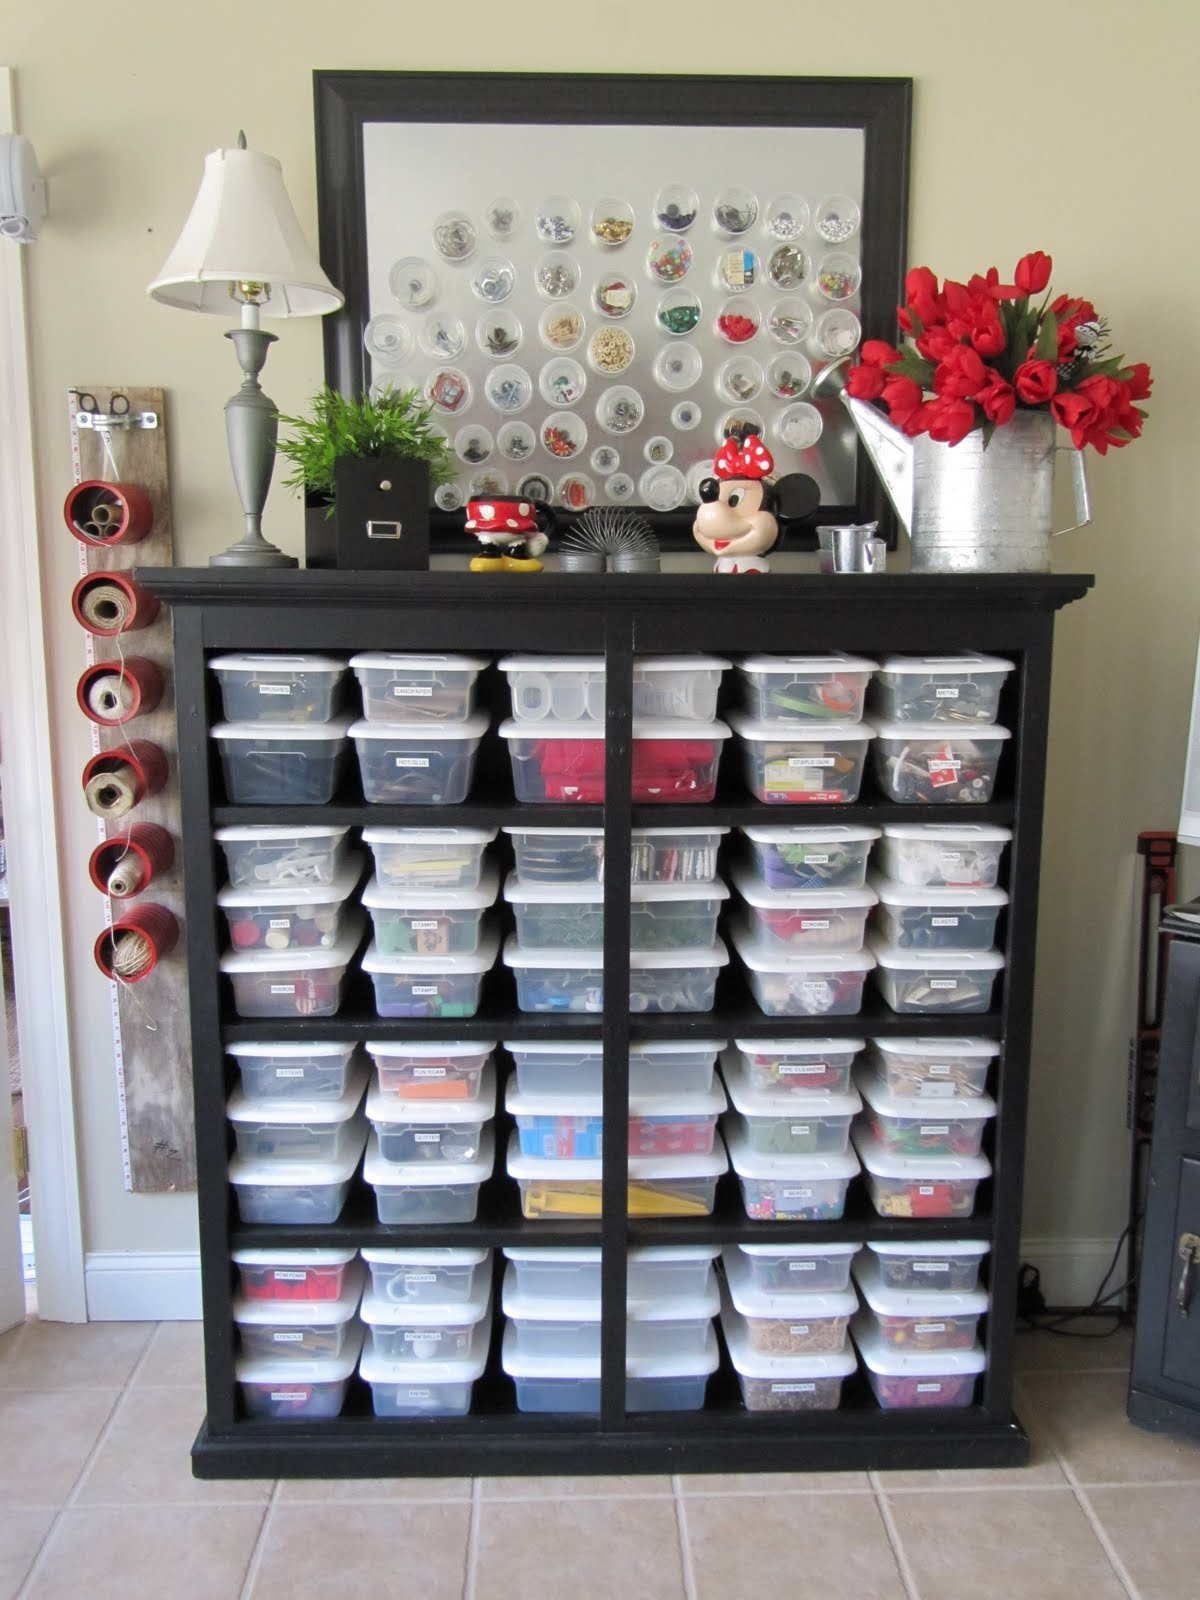 blukatkraft bead storage craft room ideas On cheap craft room storage ideas